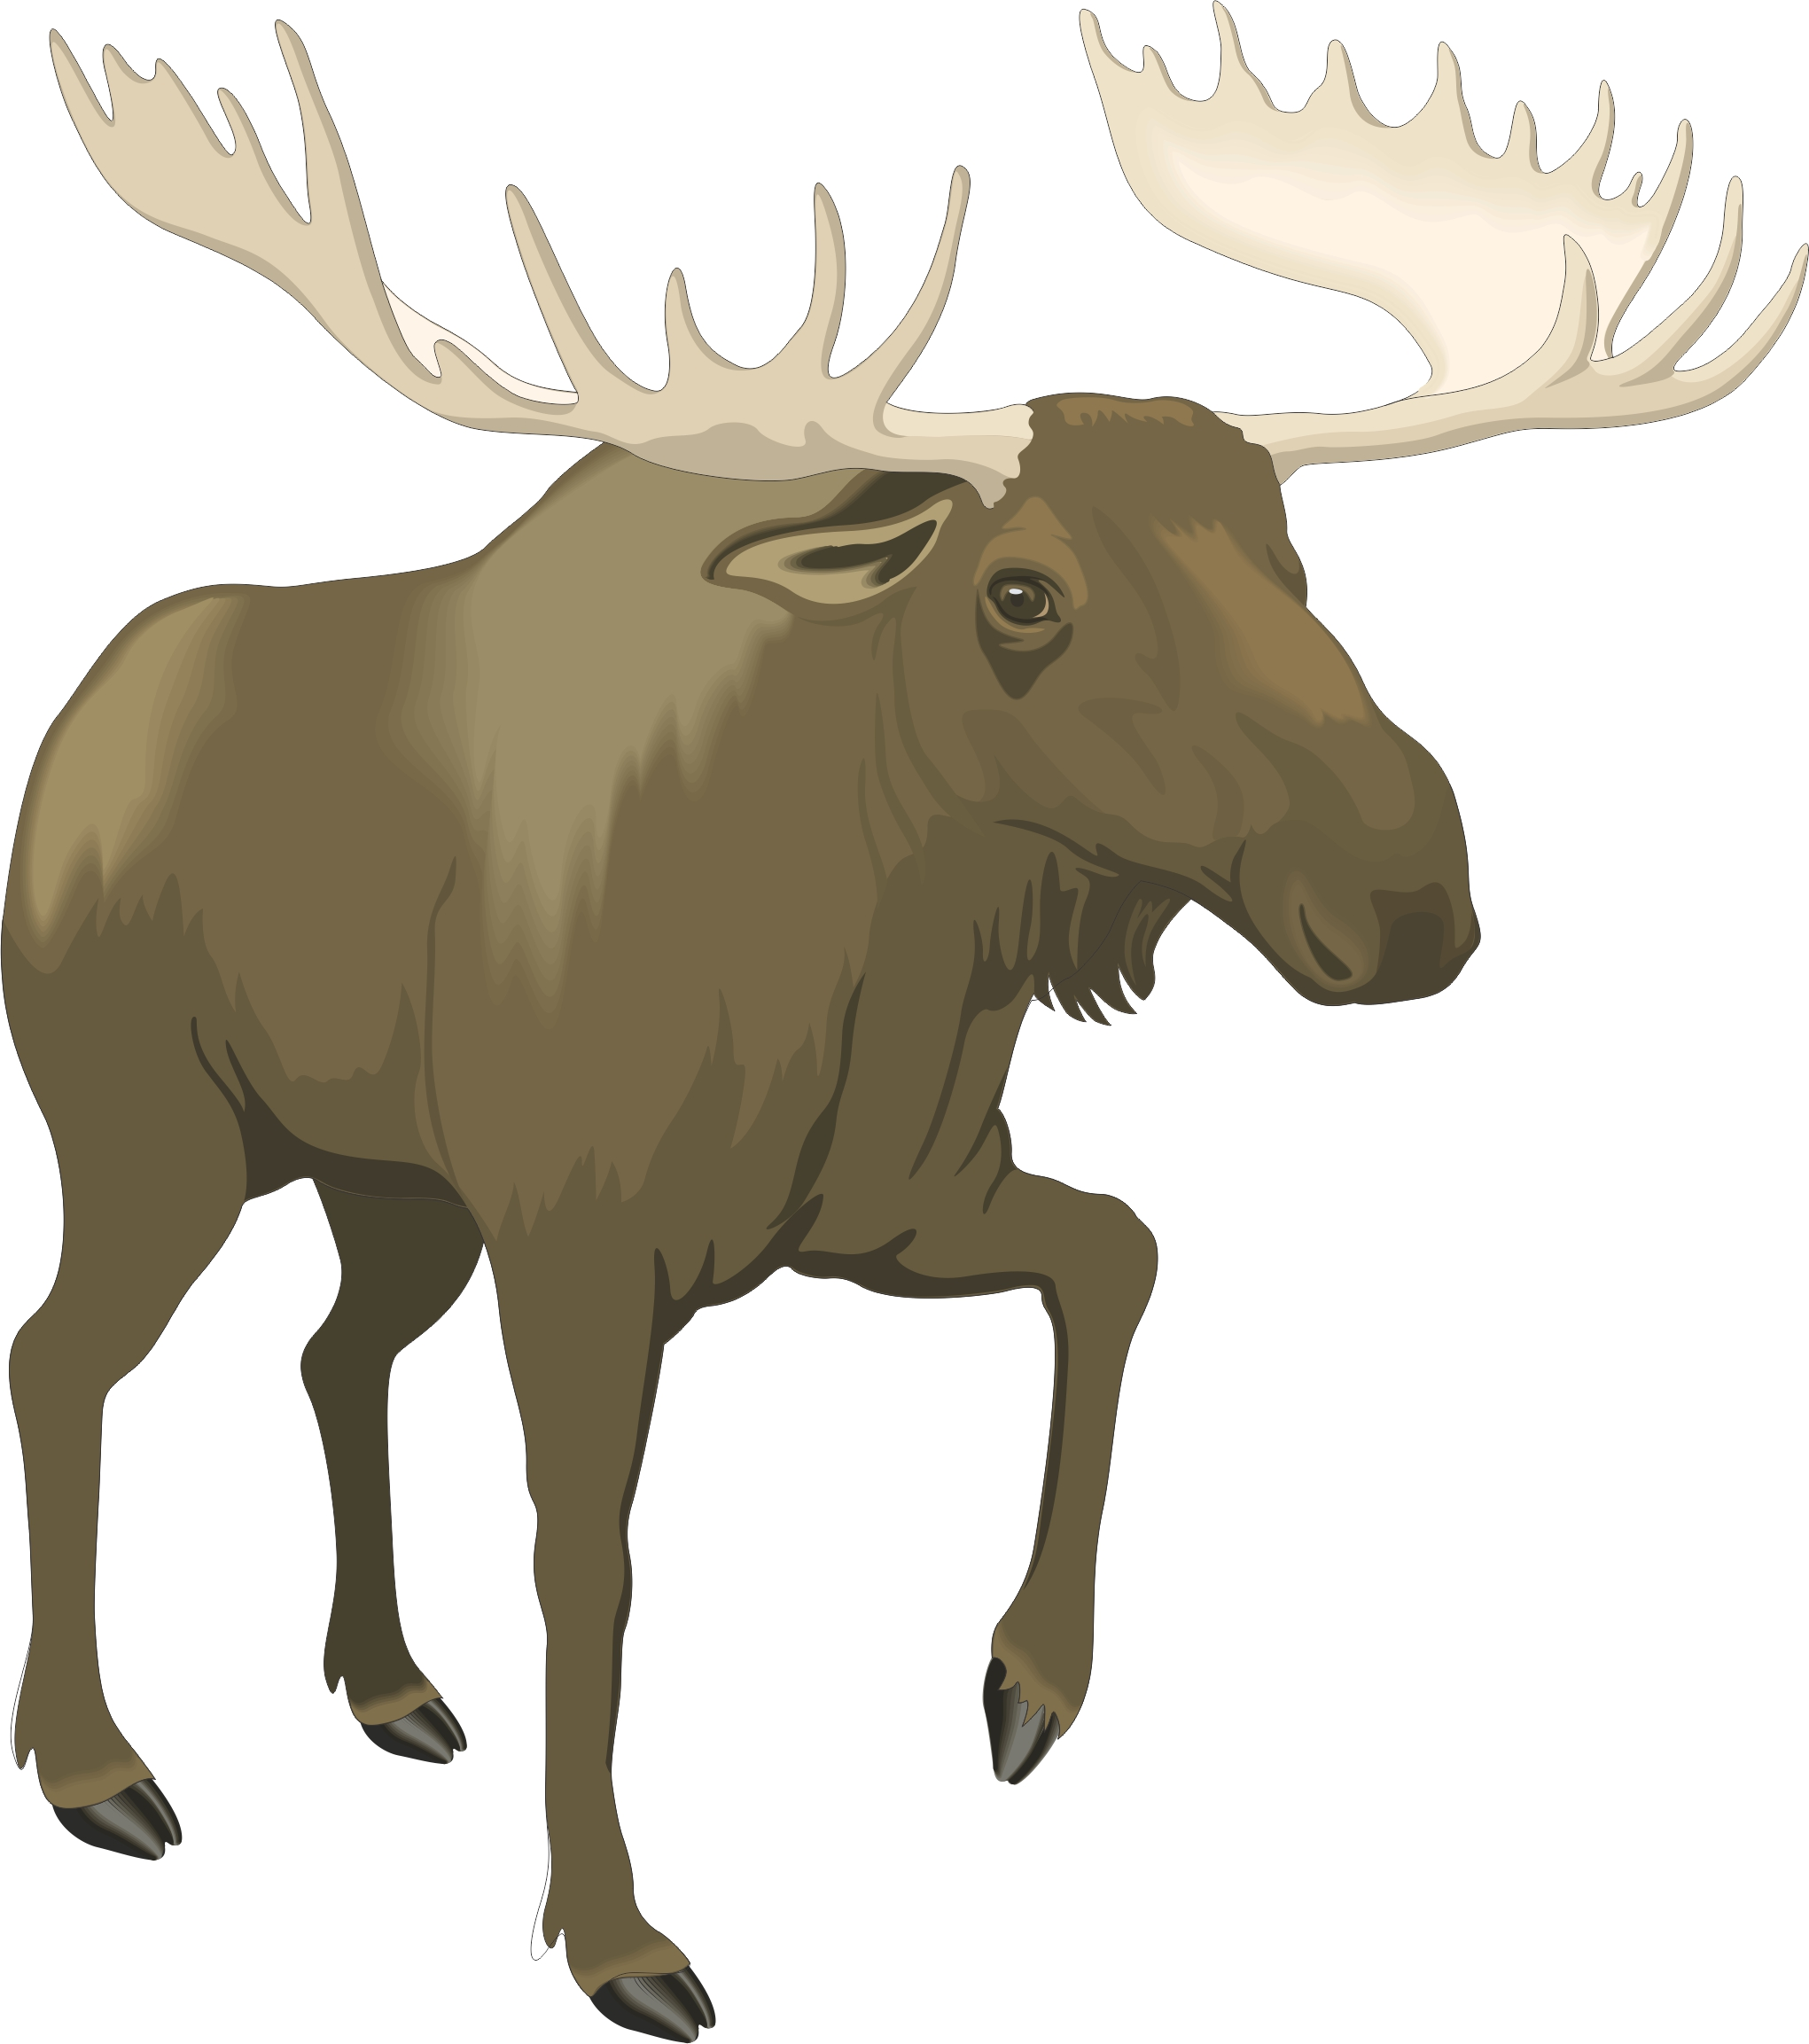 Cartoon Moose Images - Cliparts.co